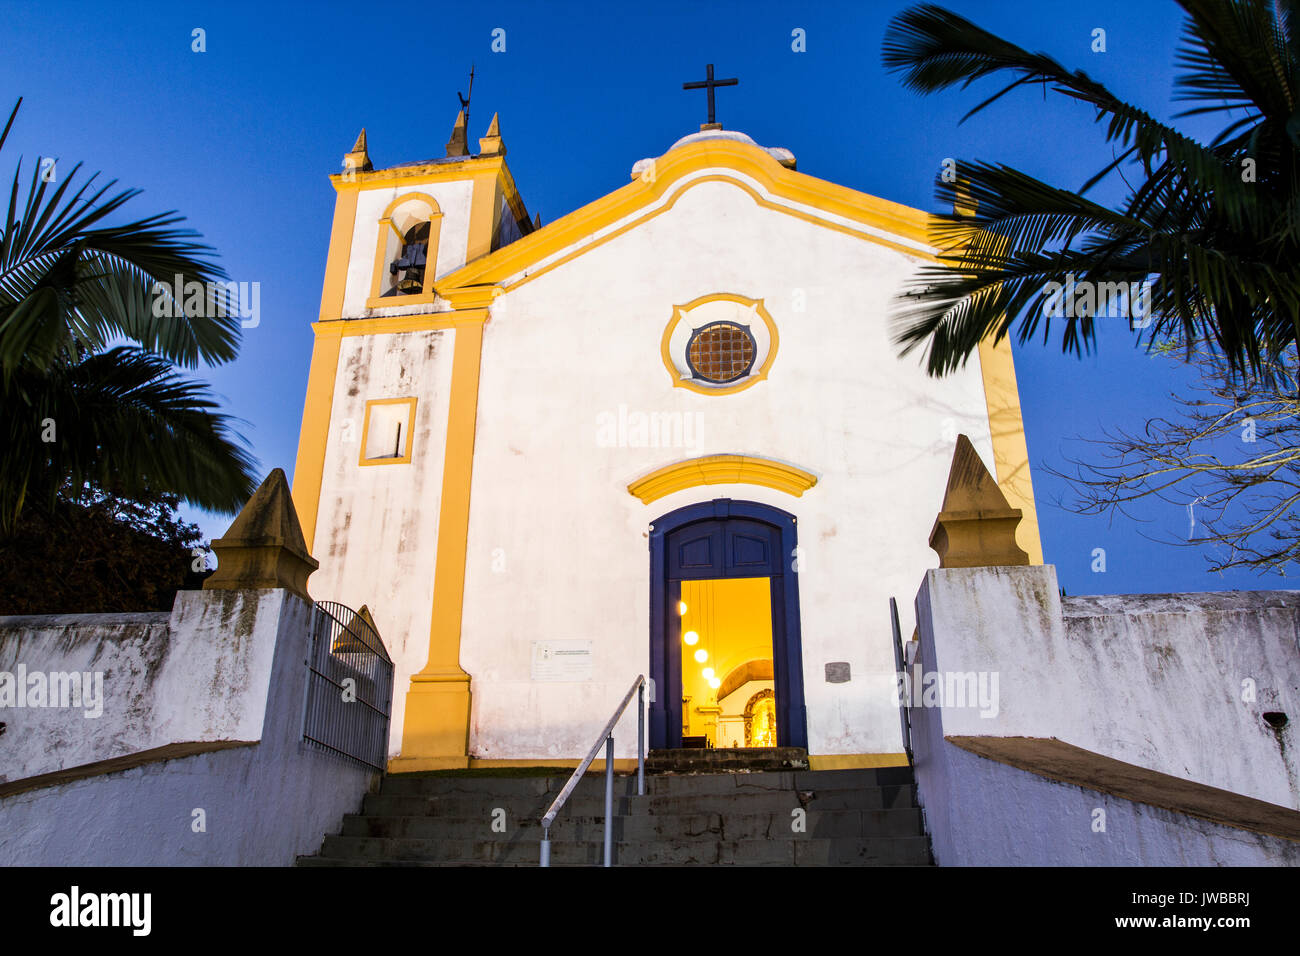 Nossa Senhora da Imaculada Conceicao Church, at Lagoa da Conceicao neighborhood, built in 1751. Florianopolis, Santa Stock Photo